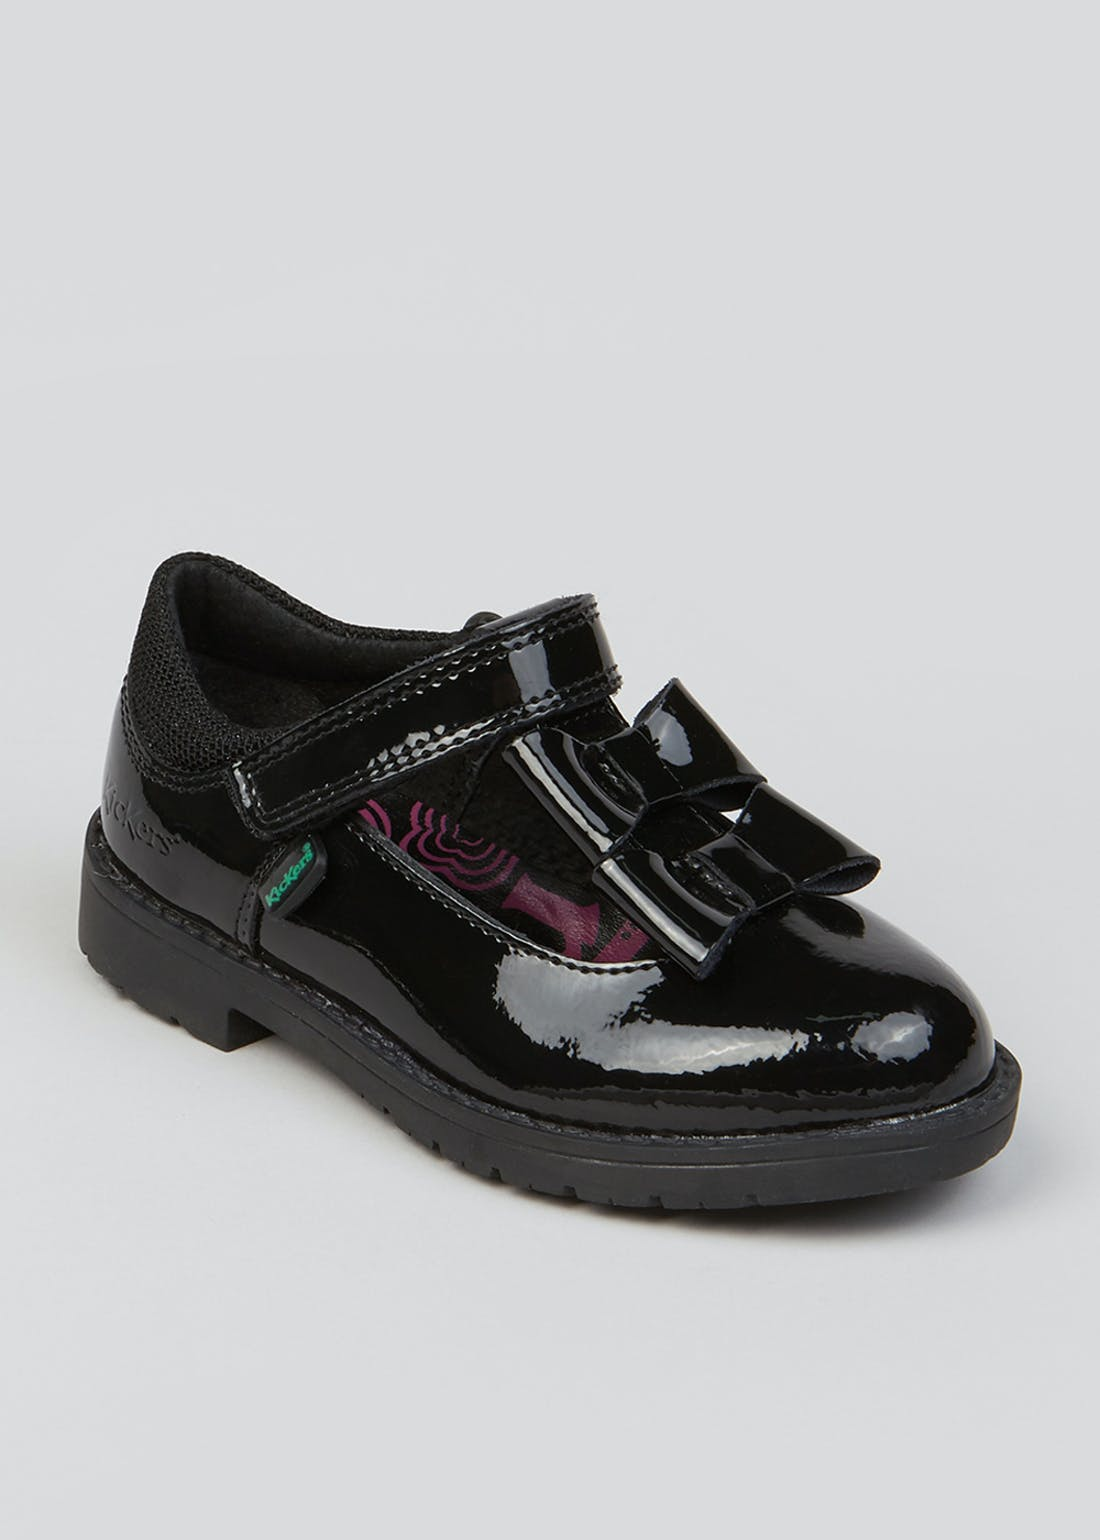 Girls Kickers Black Lachly Bow Patent Shoes (Younger 5-12)